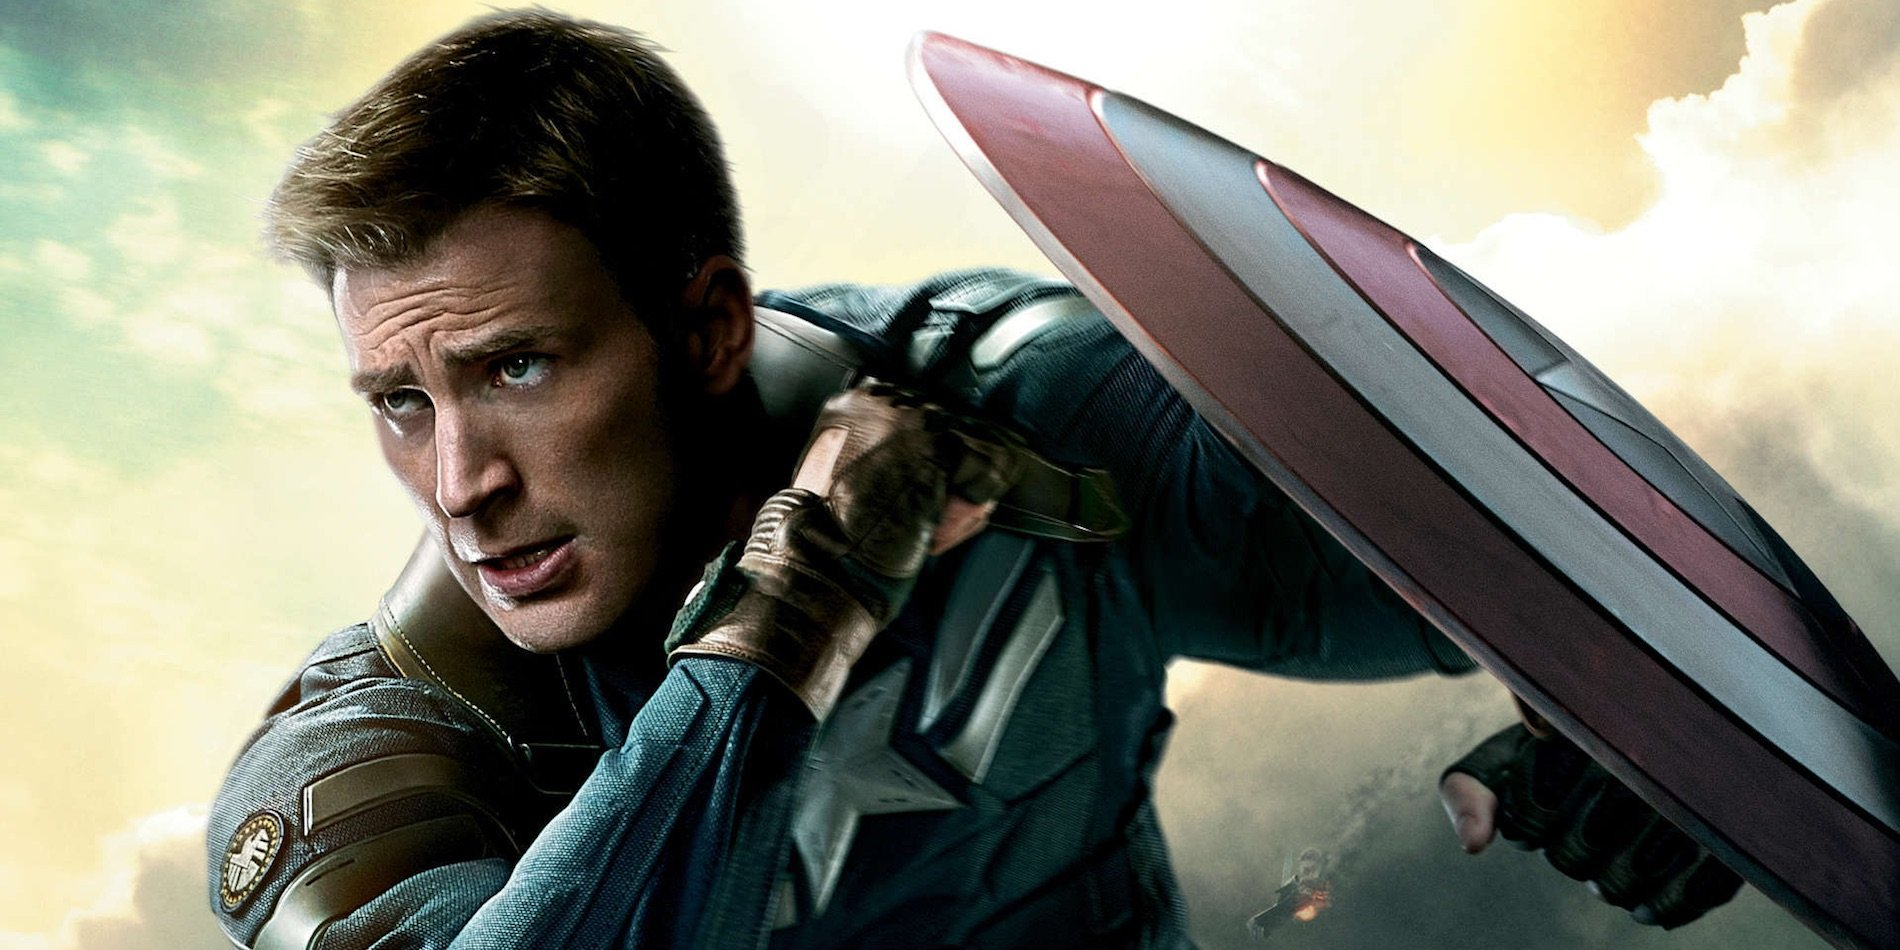 Actor Who Played Old Steve Rogers Teased Avengers: Endgame Role Months Ago